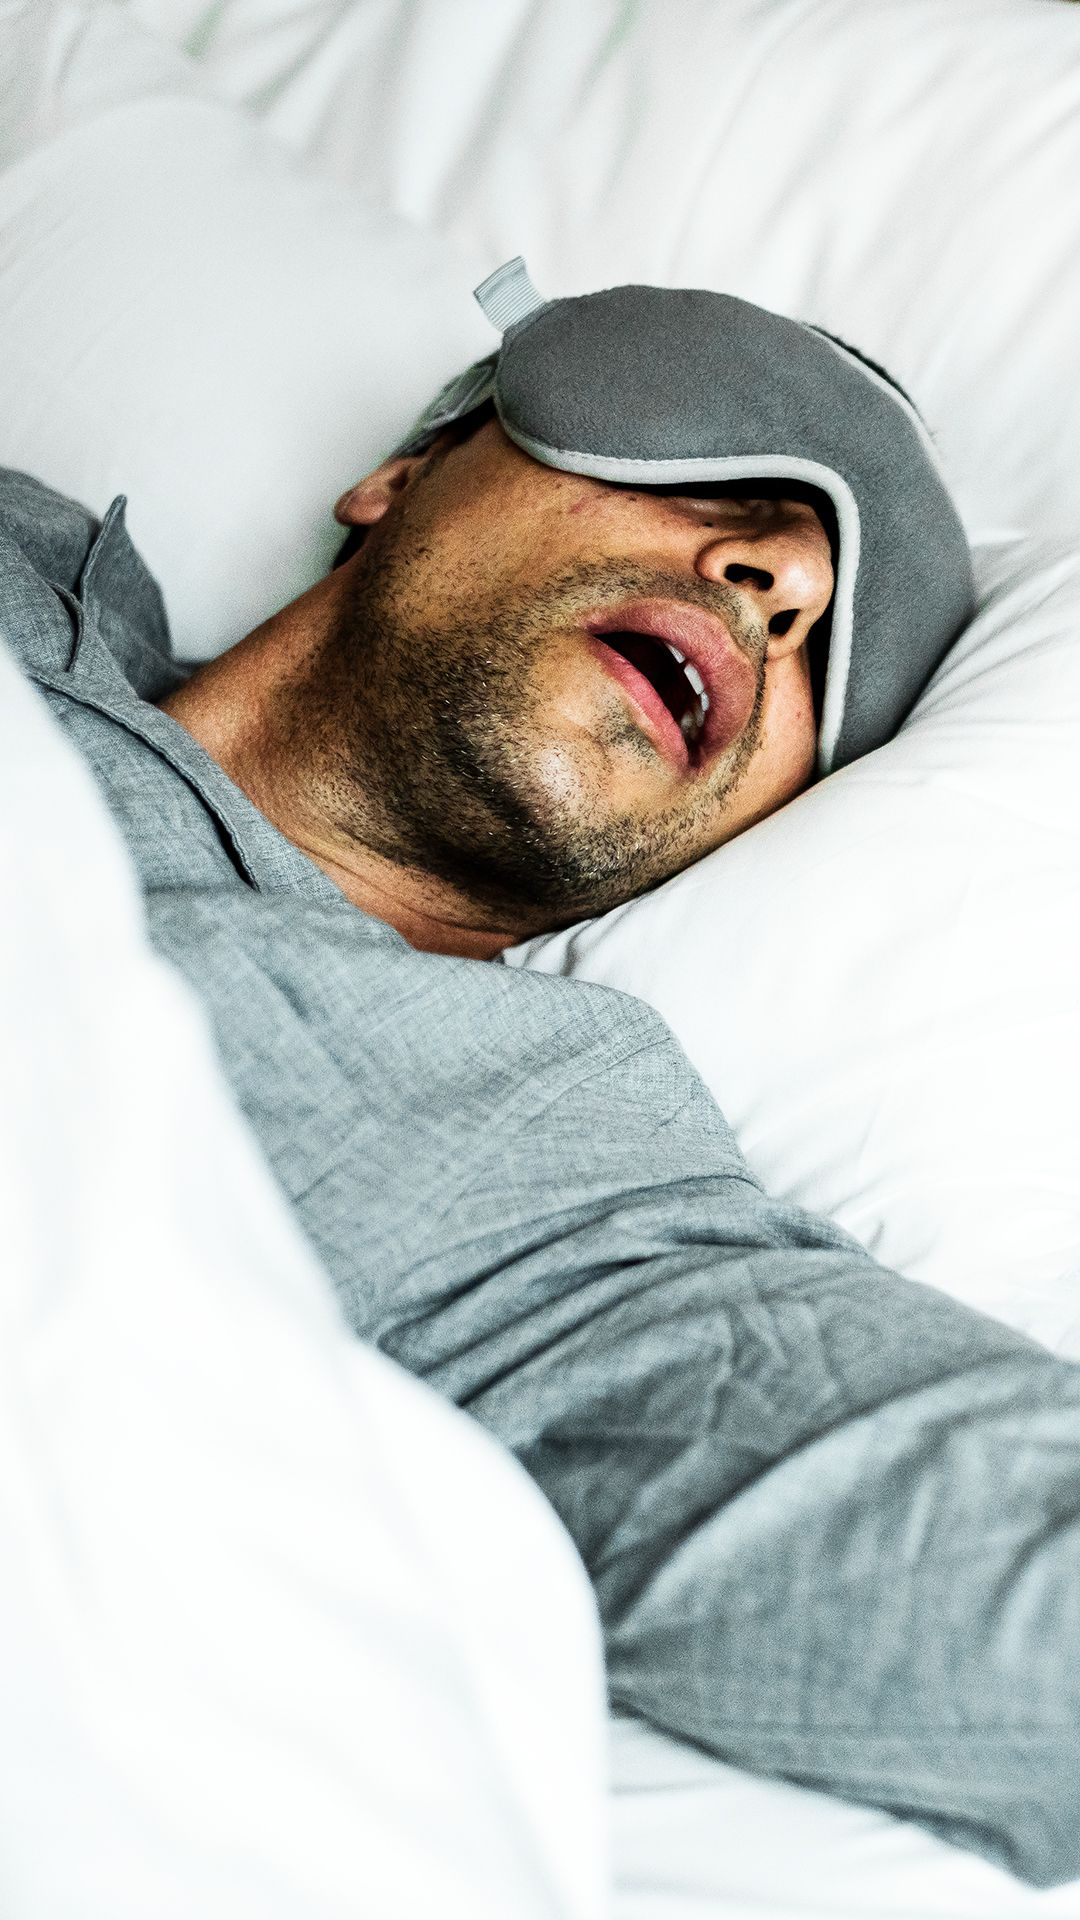 Is Snoring Dangerous? Here's When to Worry in 2020